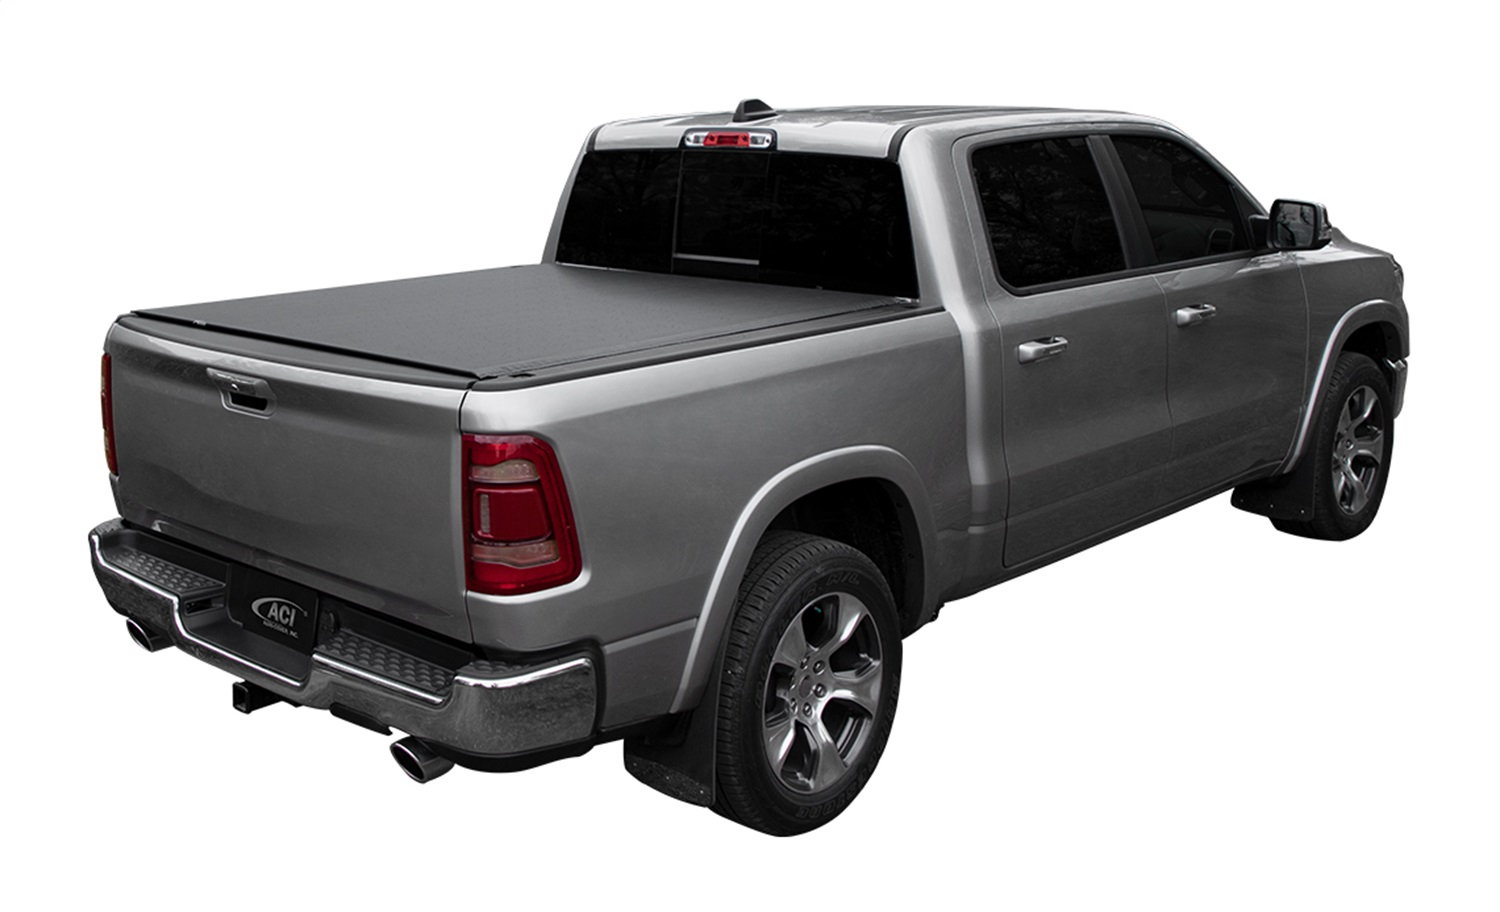 Access Cover 22040259 TONNOSPORT Roll-Up Cover Fits 19-20 2500 3500